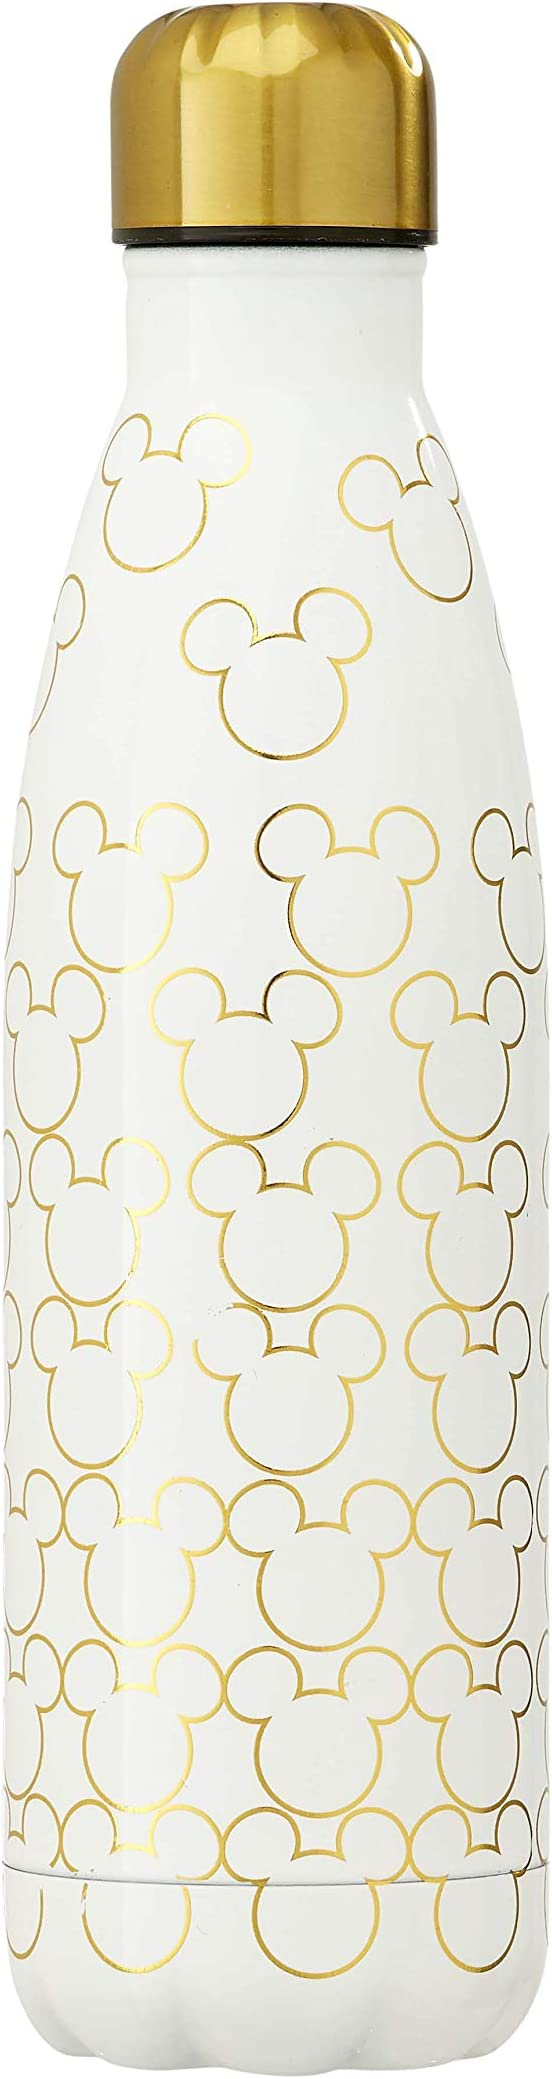 500 ml Multicolore Stainless Steel Funko Disney Classic-Metal Water Bottle-Outline Print